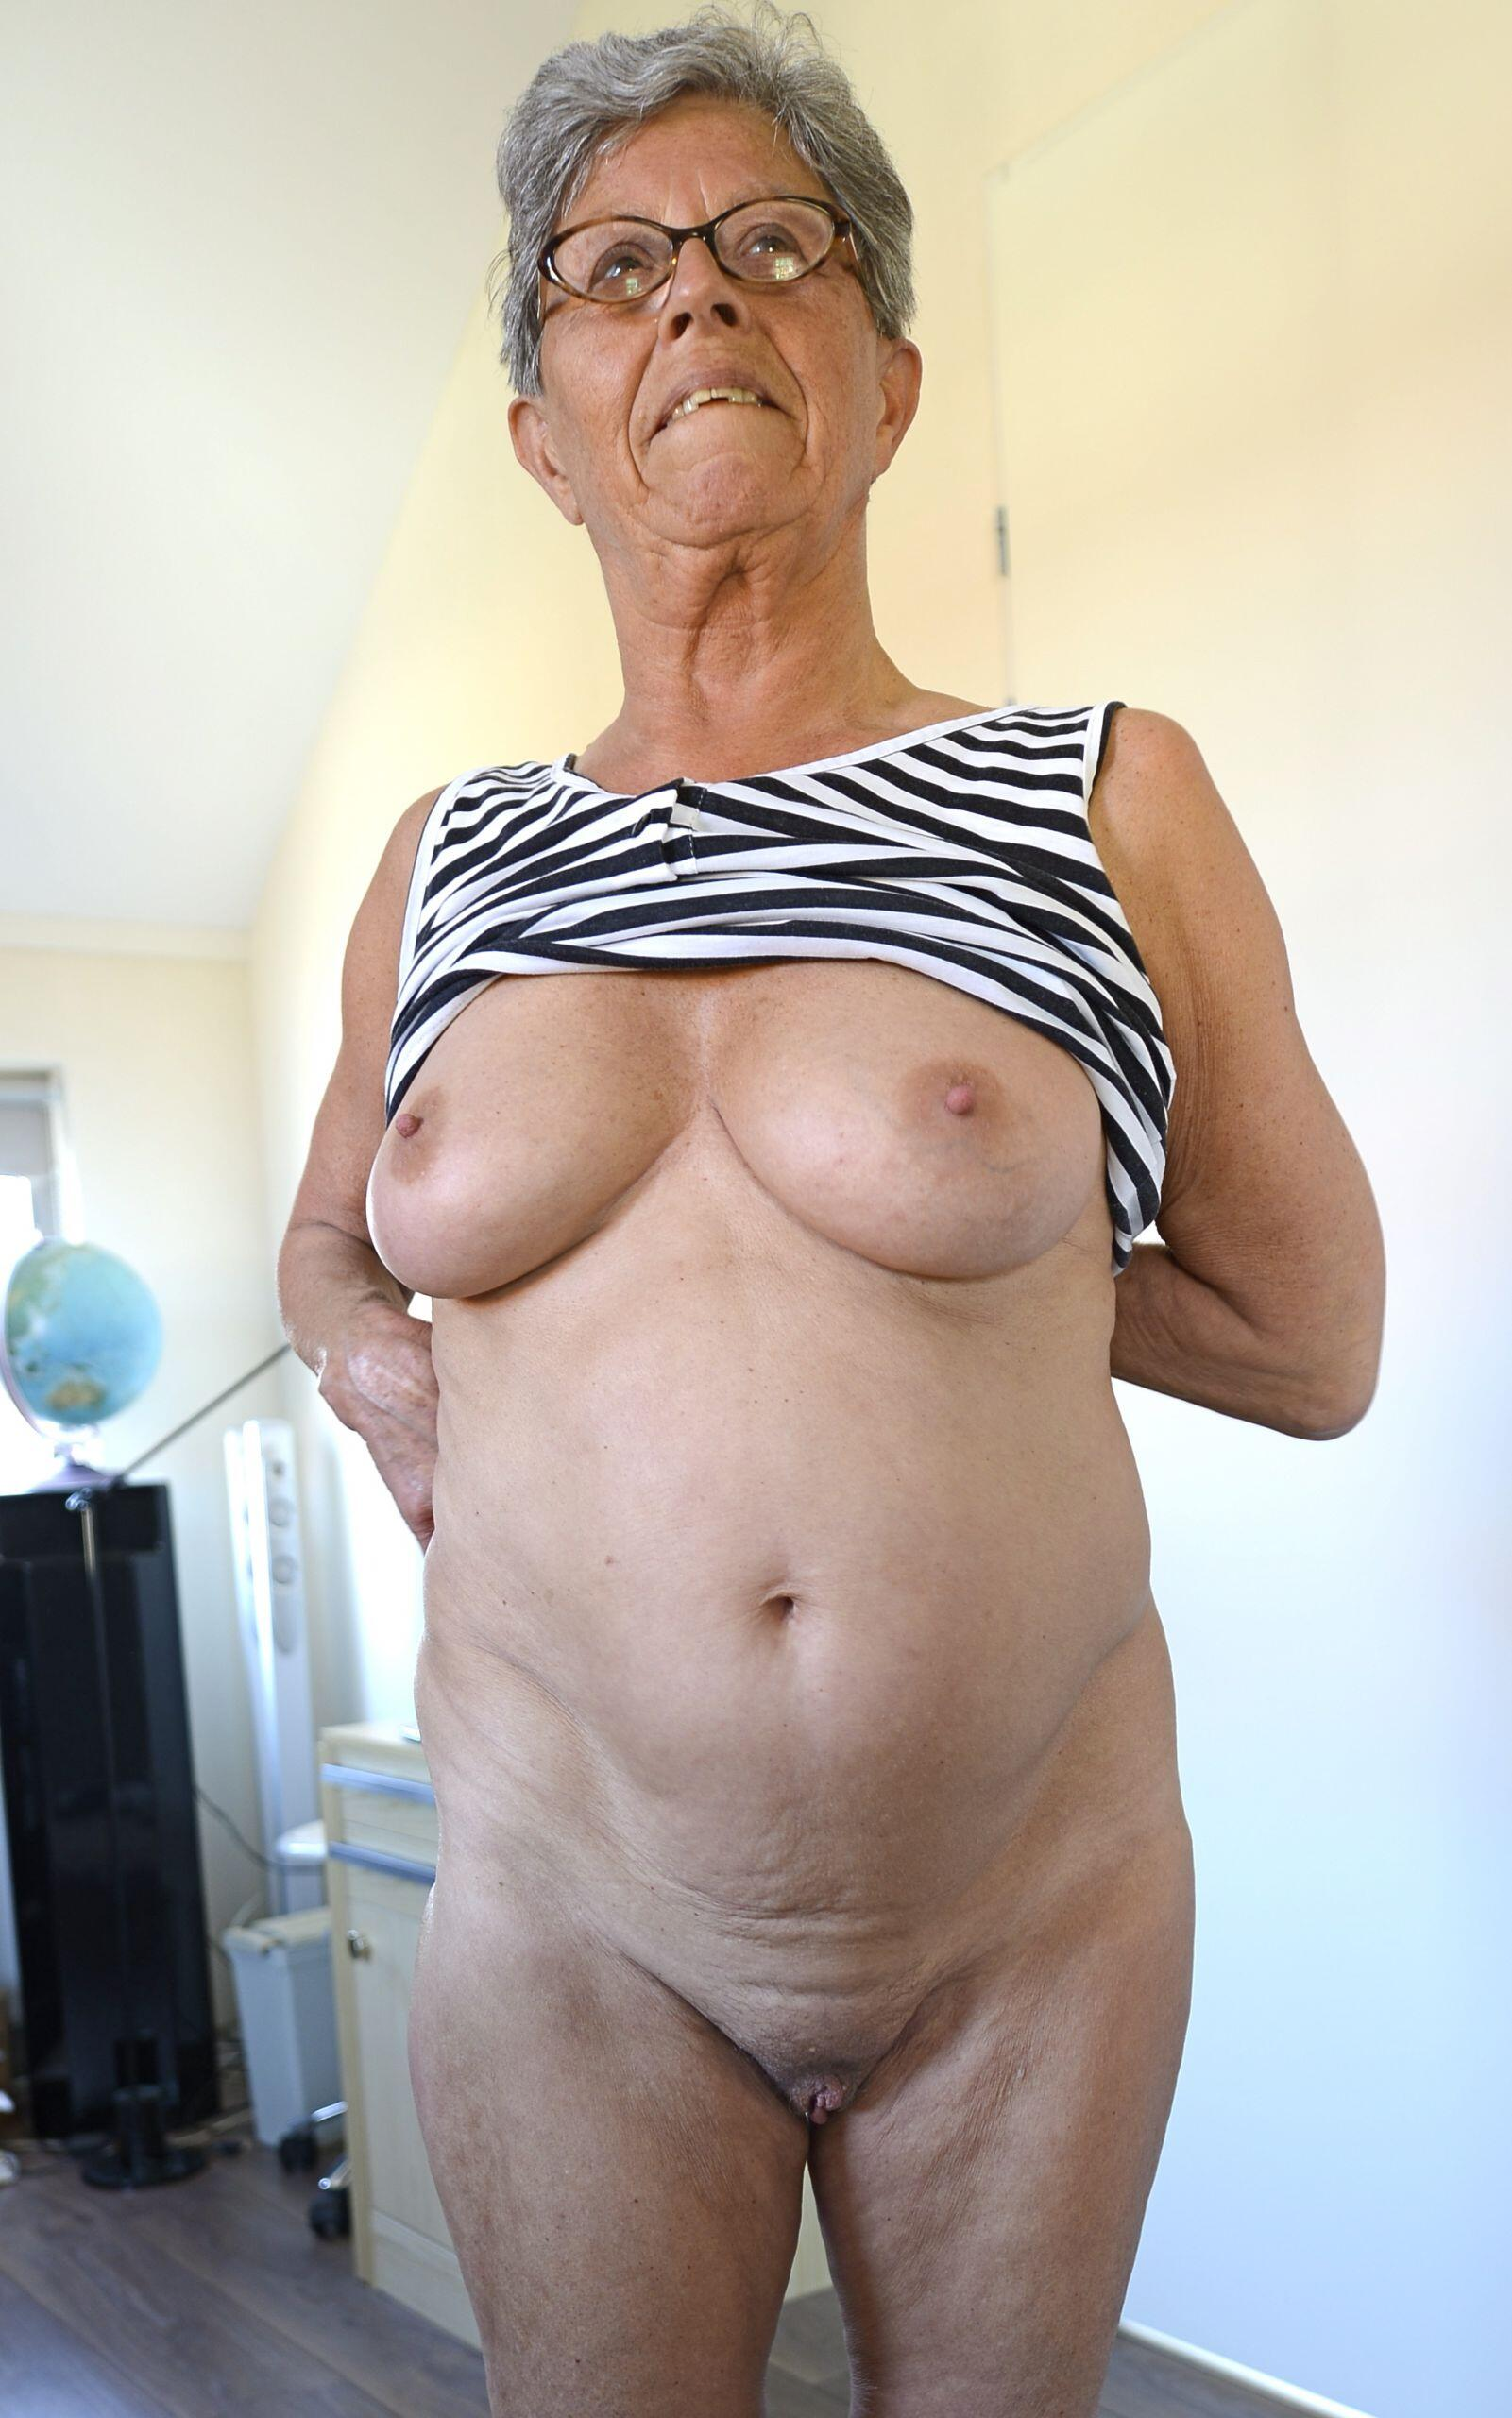 Old slut wants some action real nudity mature